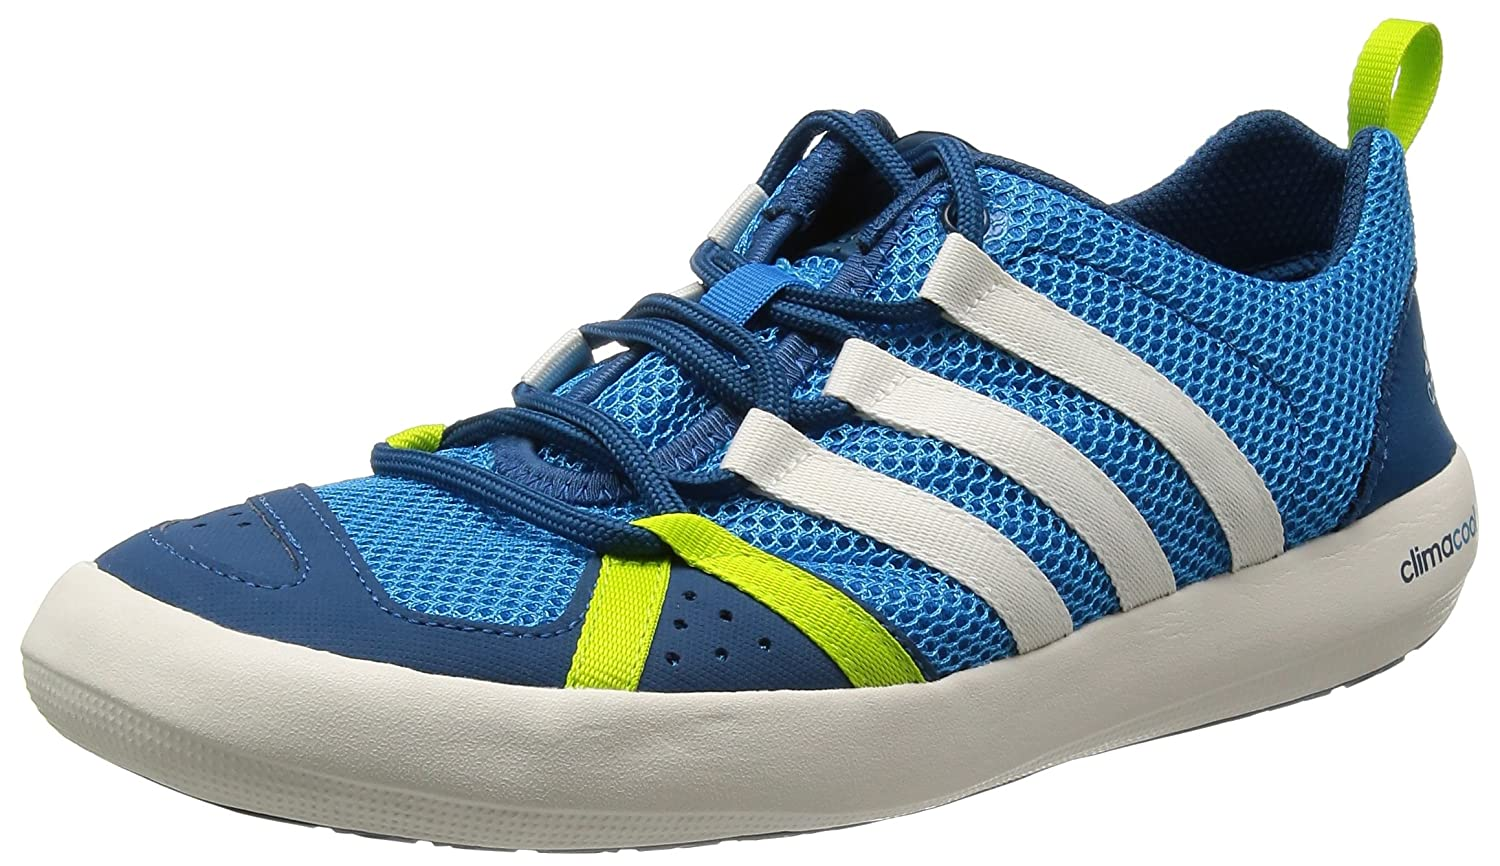 online retailer f74dc cbb55 adidas Mens Climacool Boat Lace Outdoor Fitness Shoes Blue ...